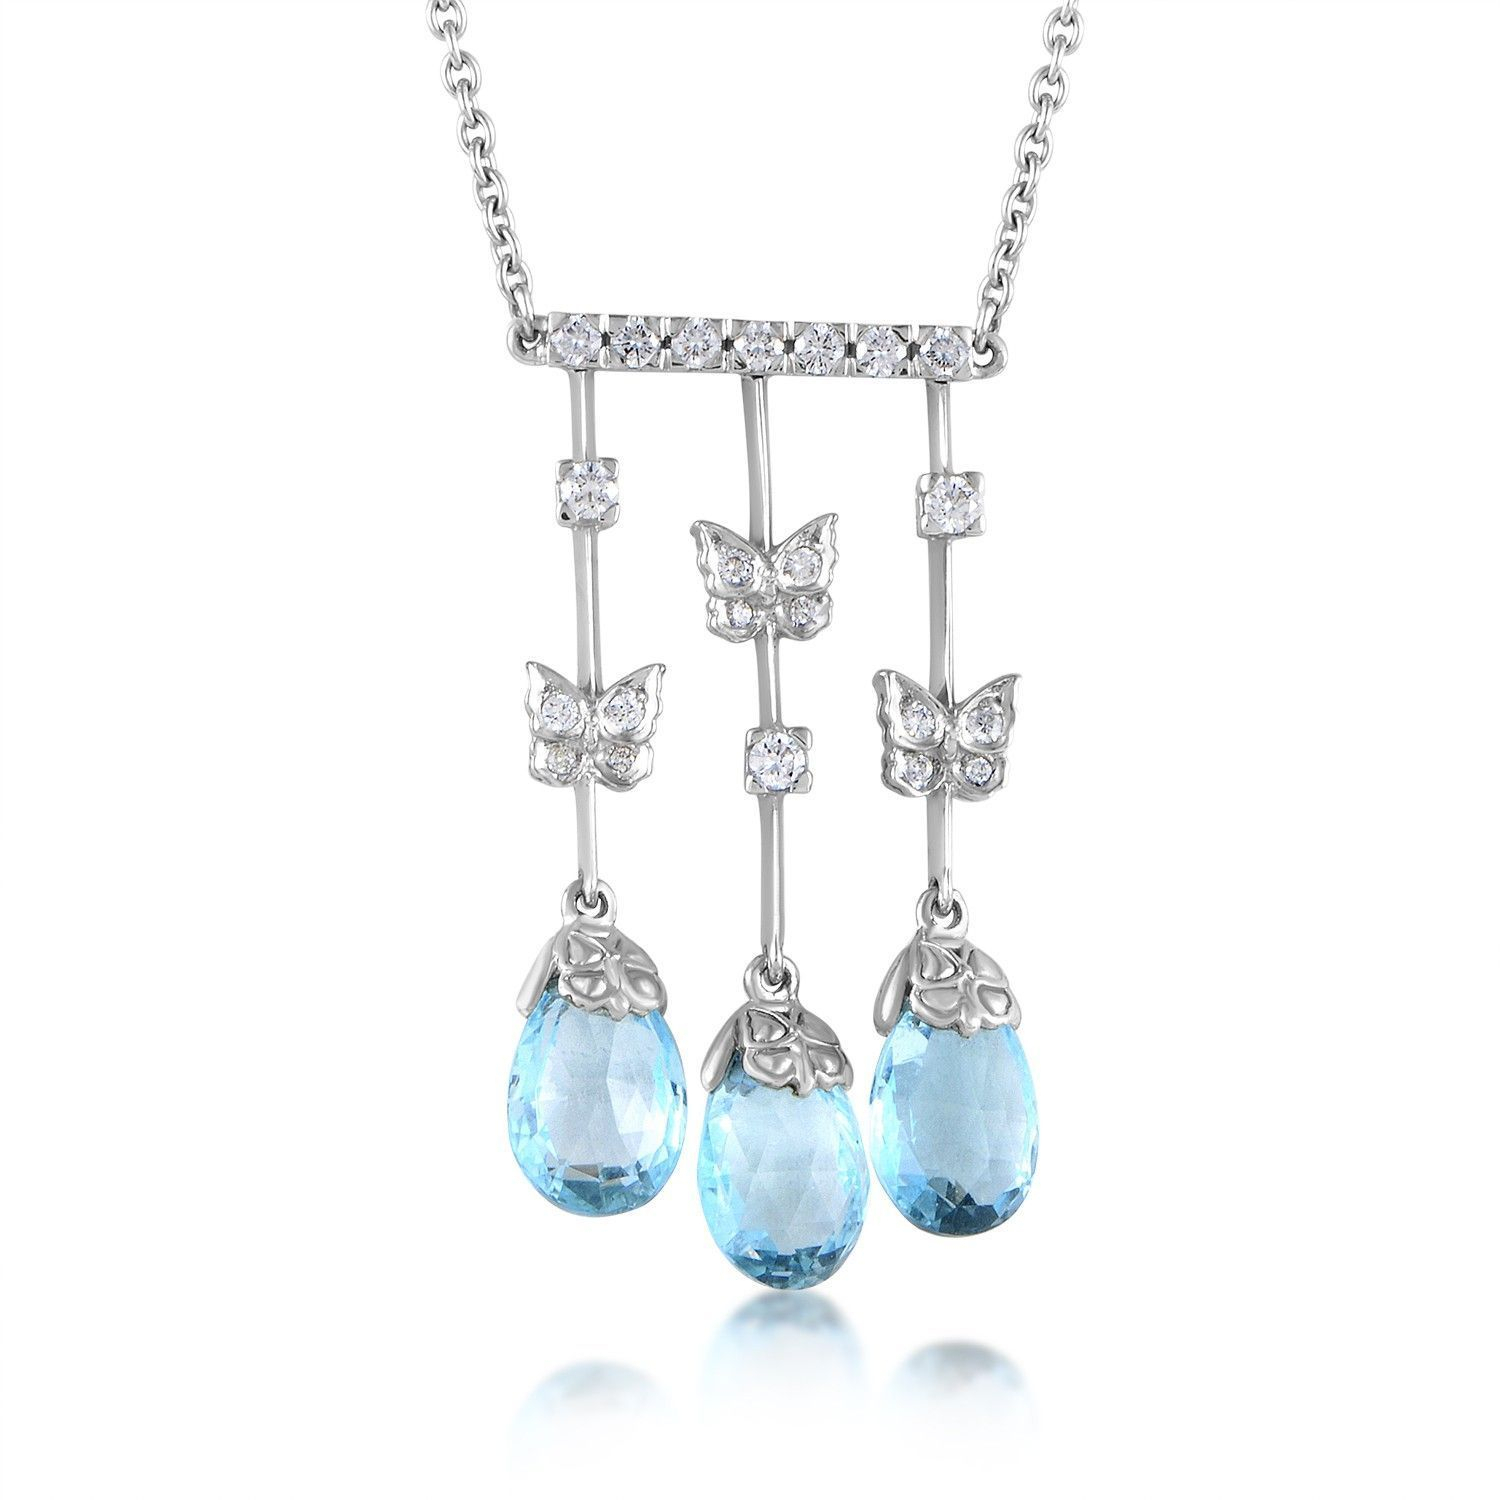 Carrera Y Carrera Baile De Mariposas 18K White Gold Diamond And Topaz  Briolette Pendant Necklace Intended For 2020 Sparkling Butterfly Y  Necklaces (View 9 of 25)